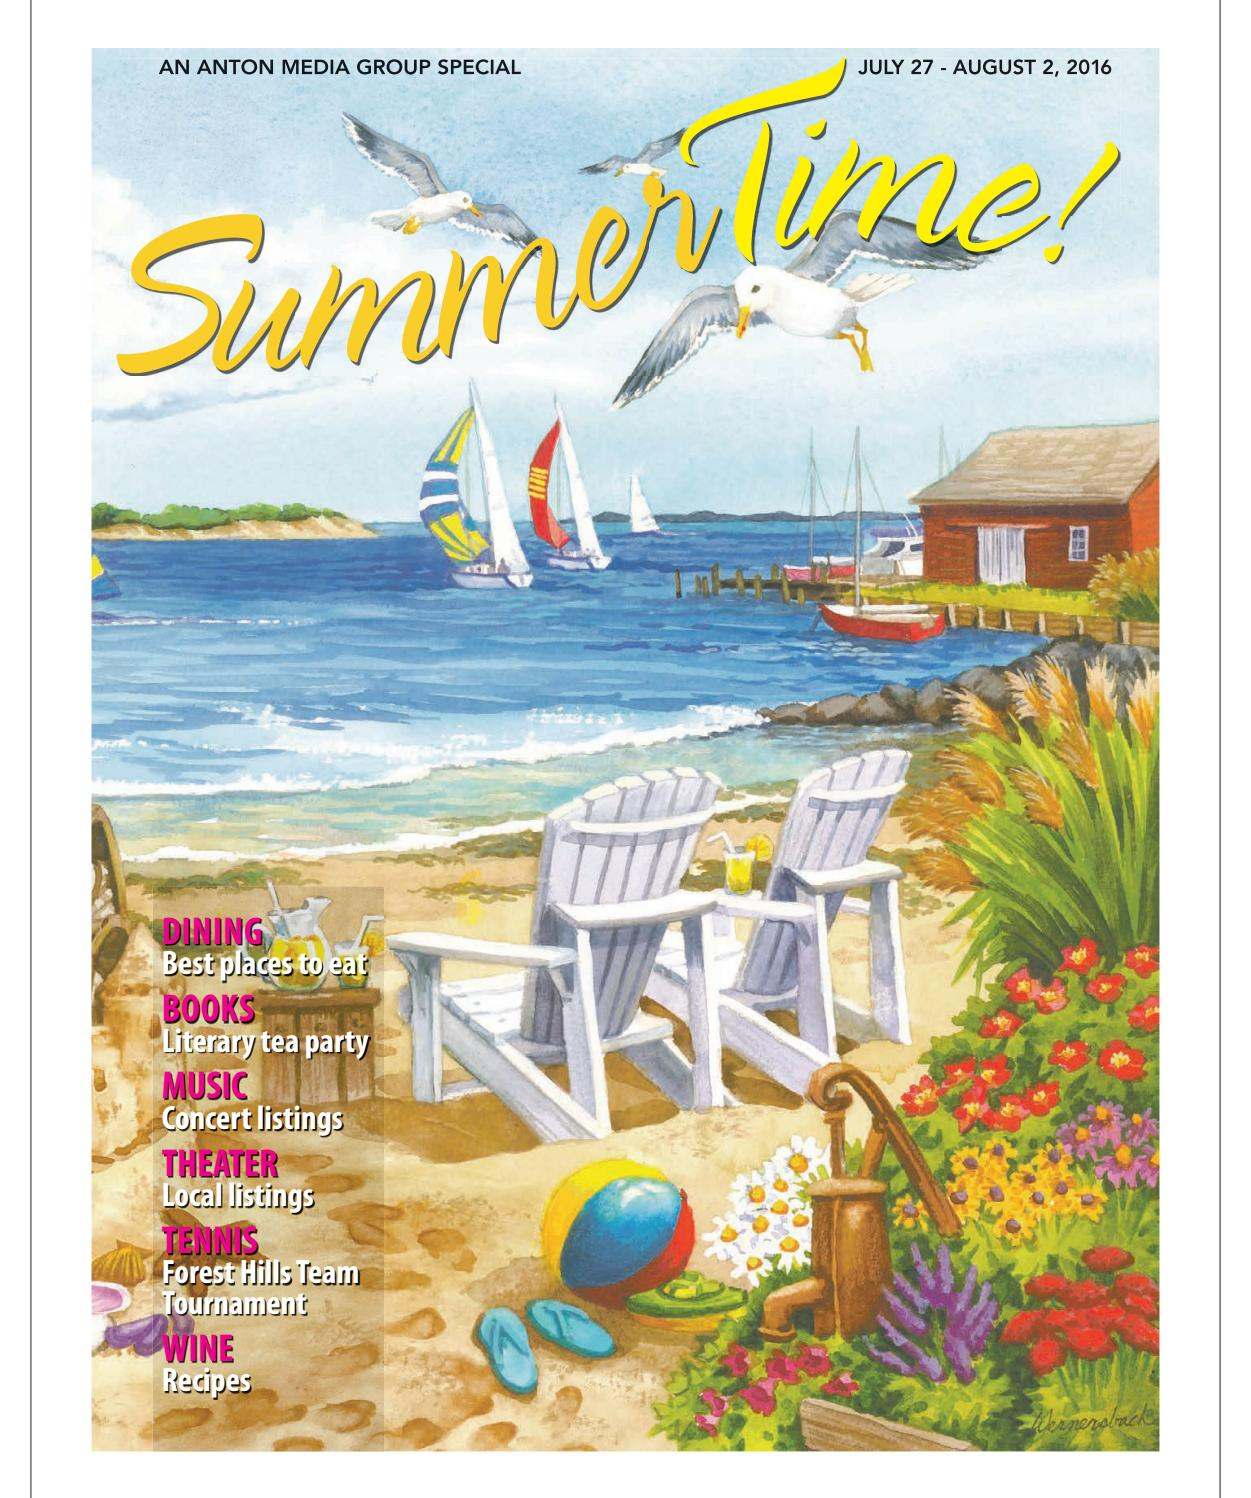 Summertime! 07-27-16 by Anton Community Newspapers - issuu 0749b6d5b5e